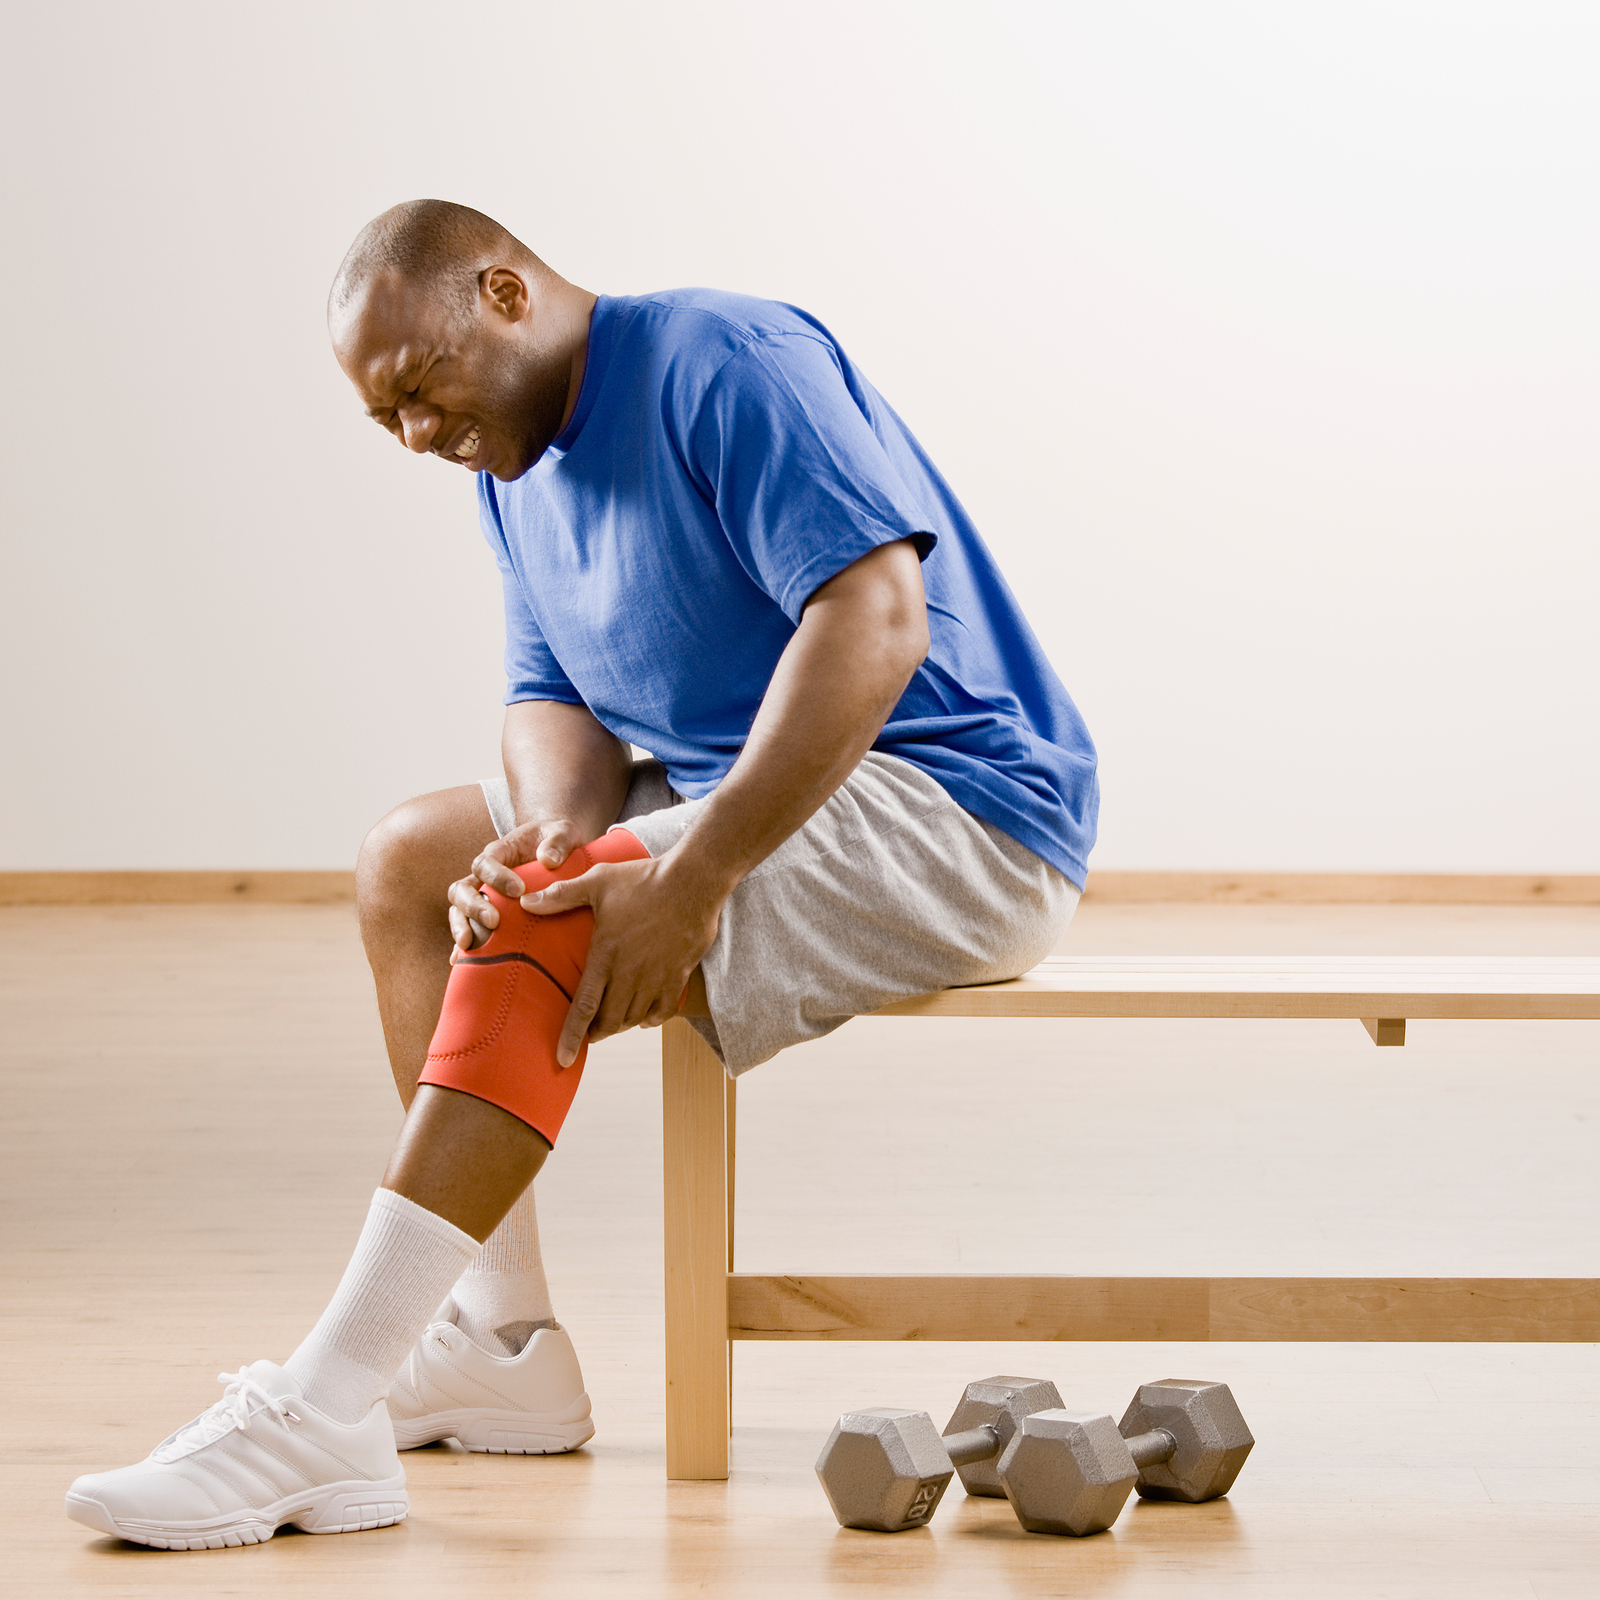 sports injury treatment from your chiropractor in beaverton